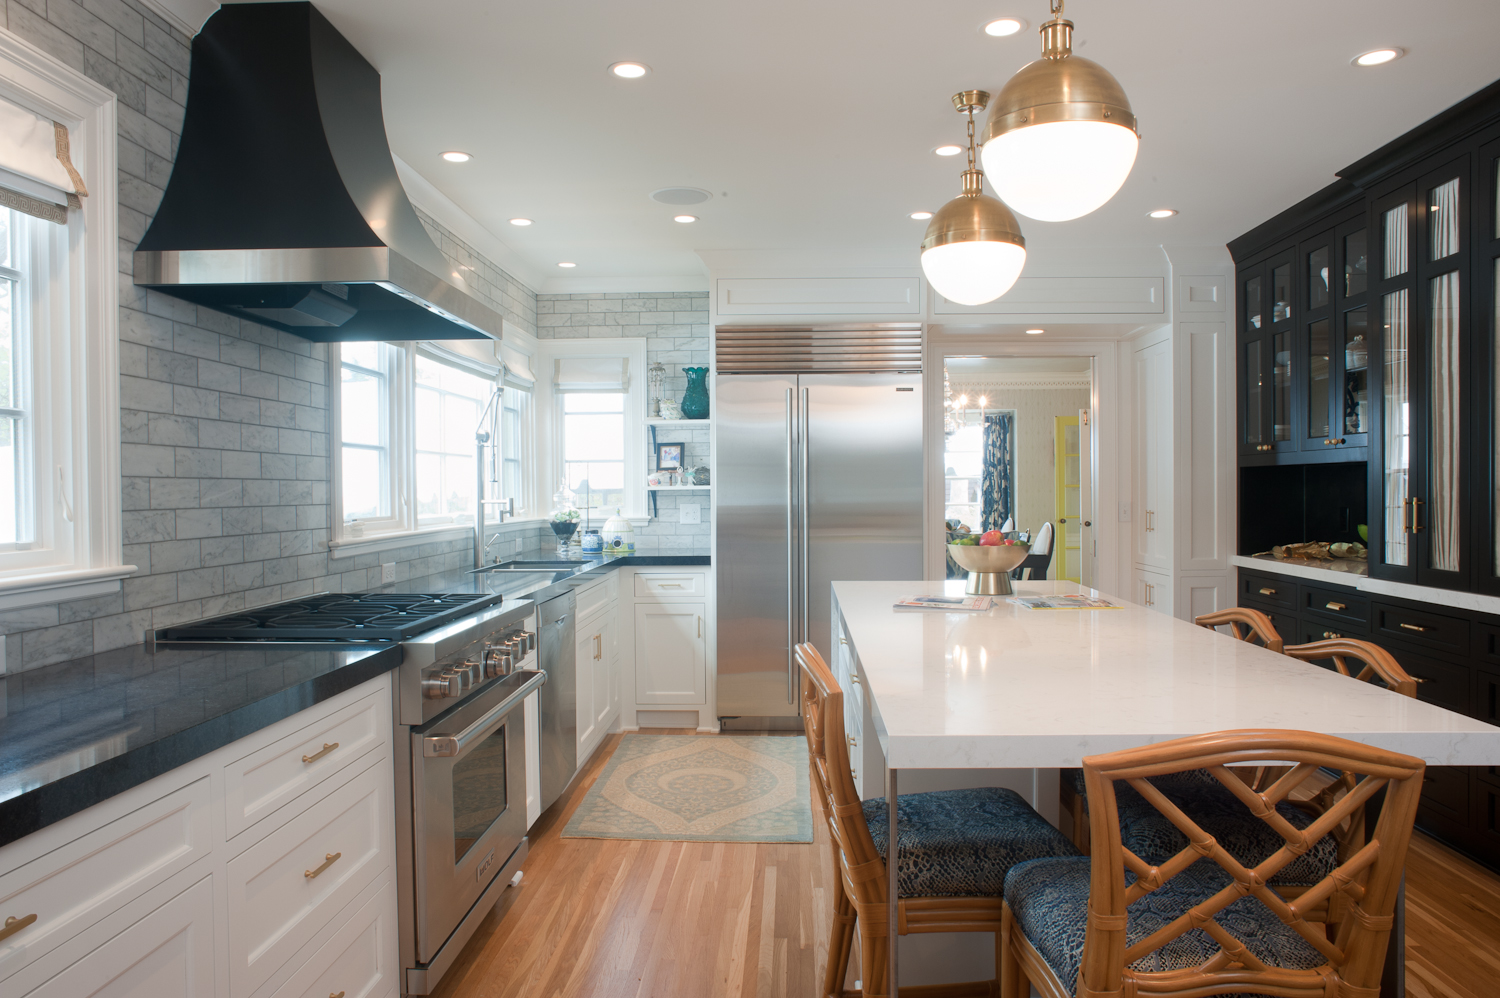 Kitchen, 2014 ASID Showcase Home